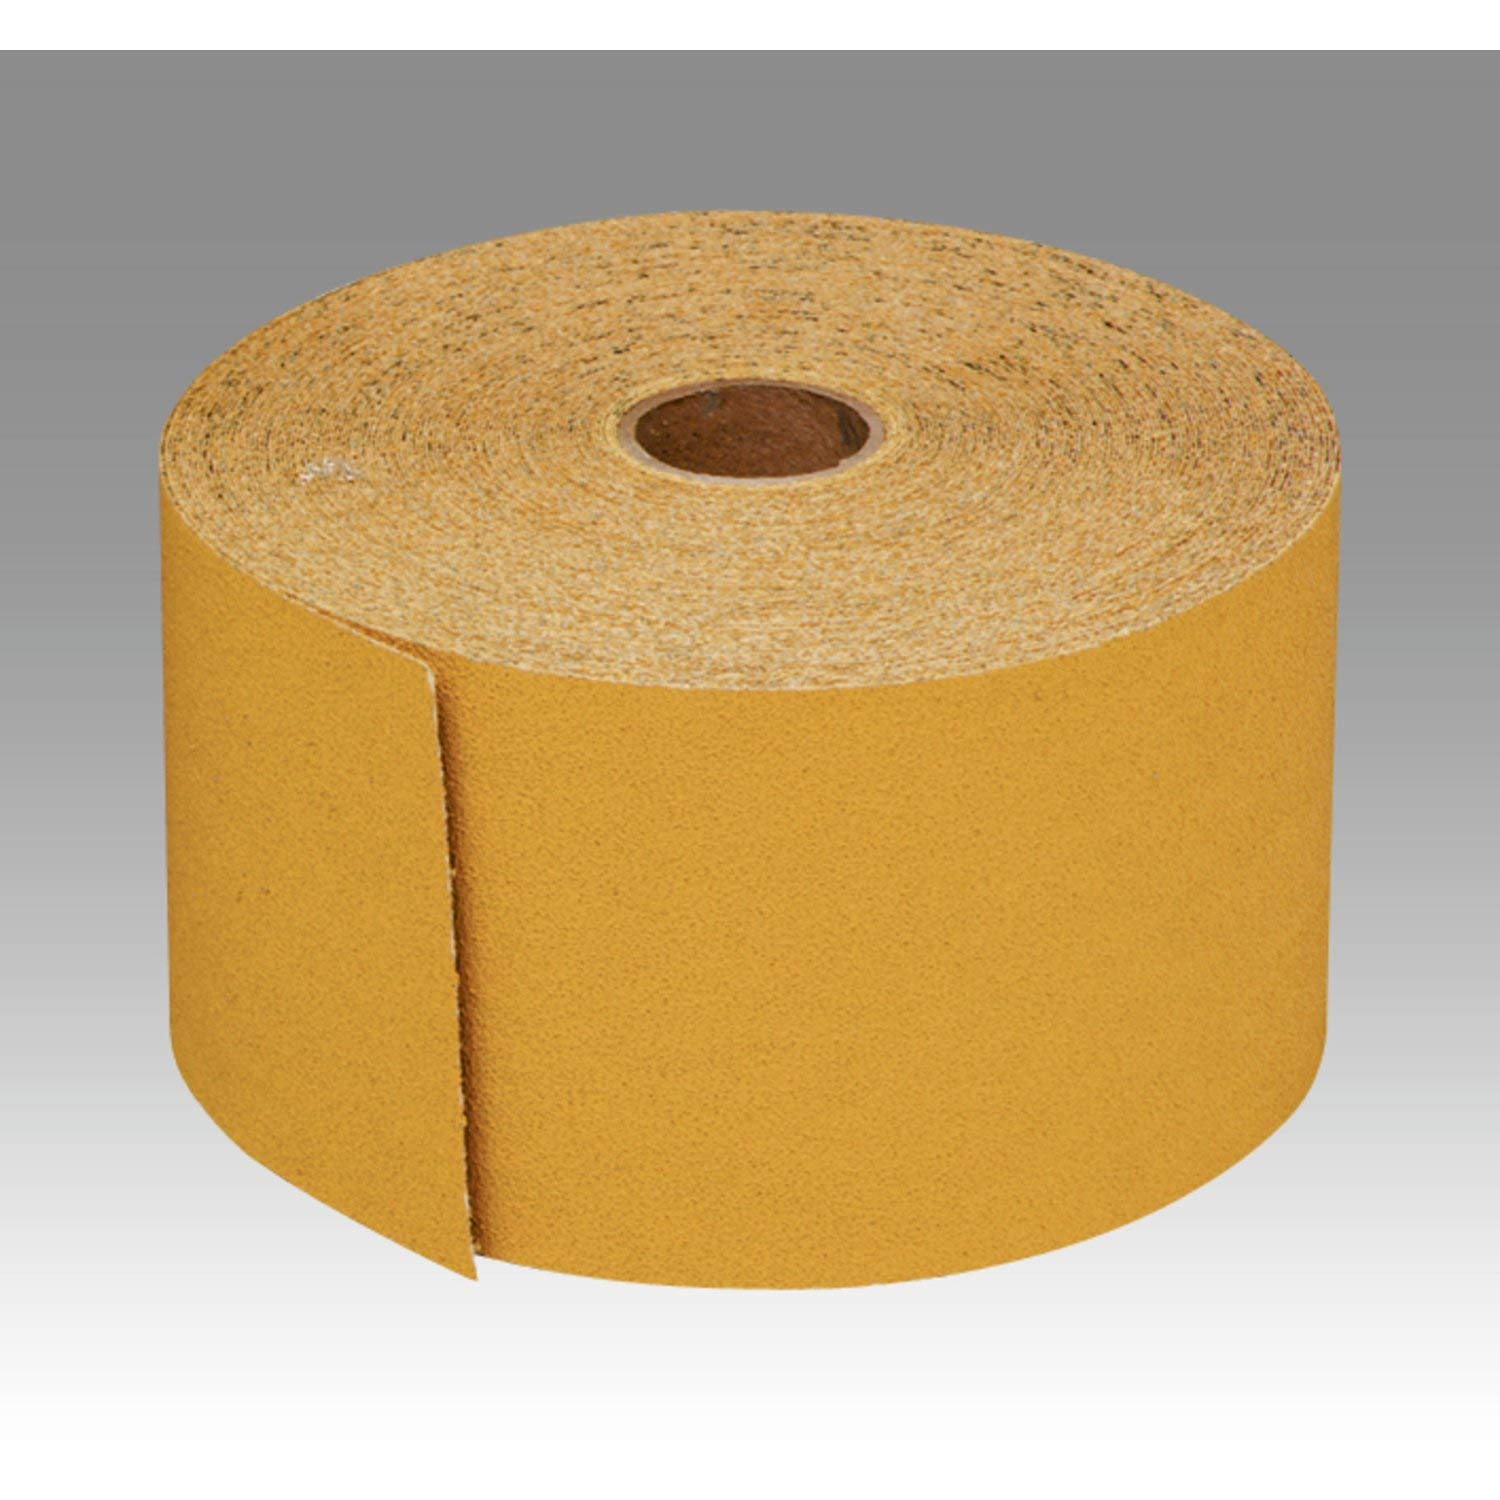 3M Stikit Gold Paper Fresno Mall Sheet Roll - Max 57% OFF Backed Sanding 216U D Adhesive